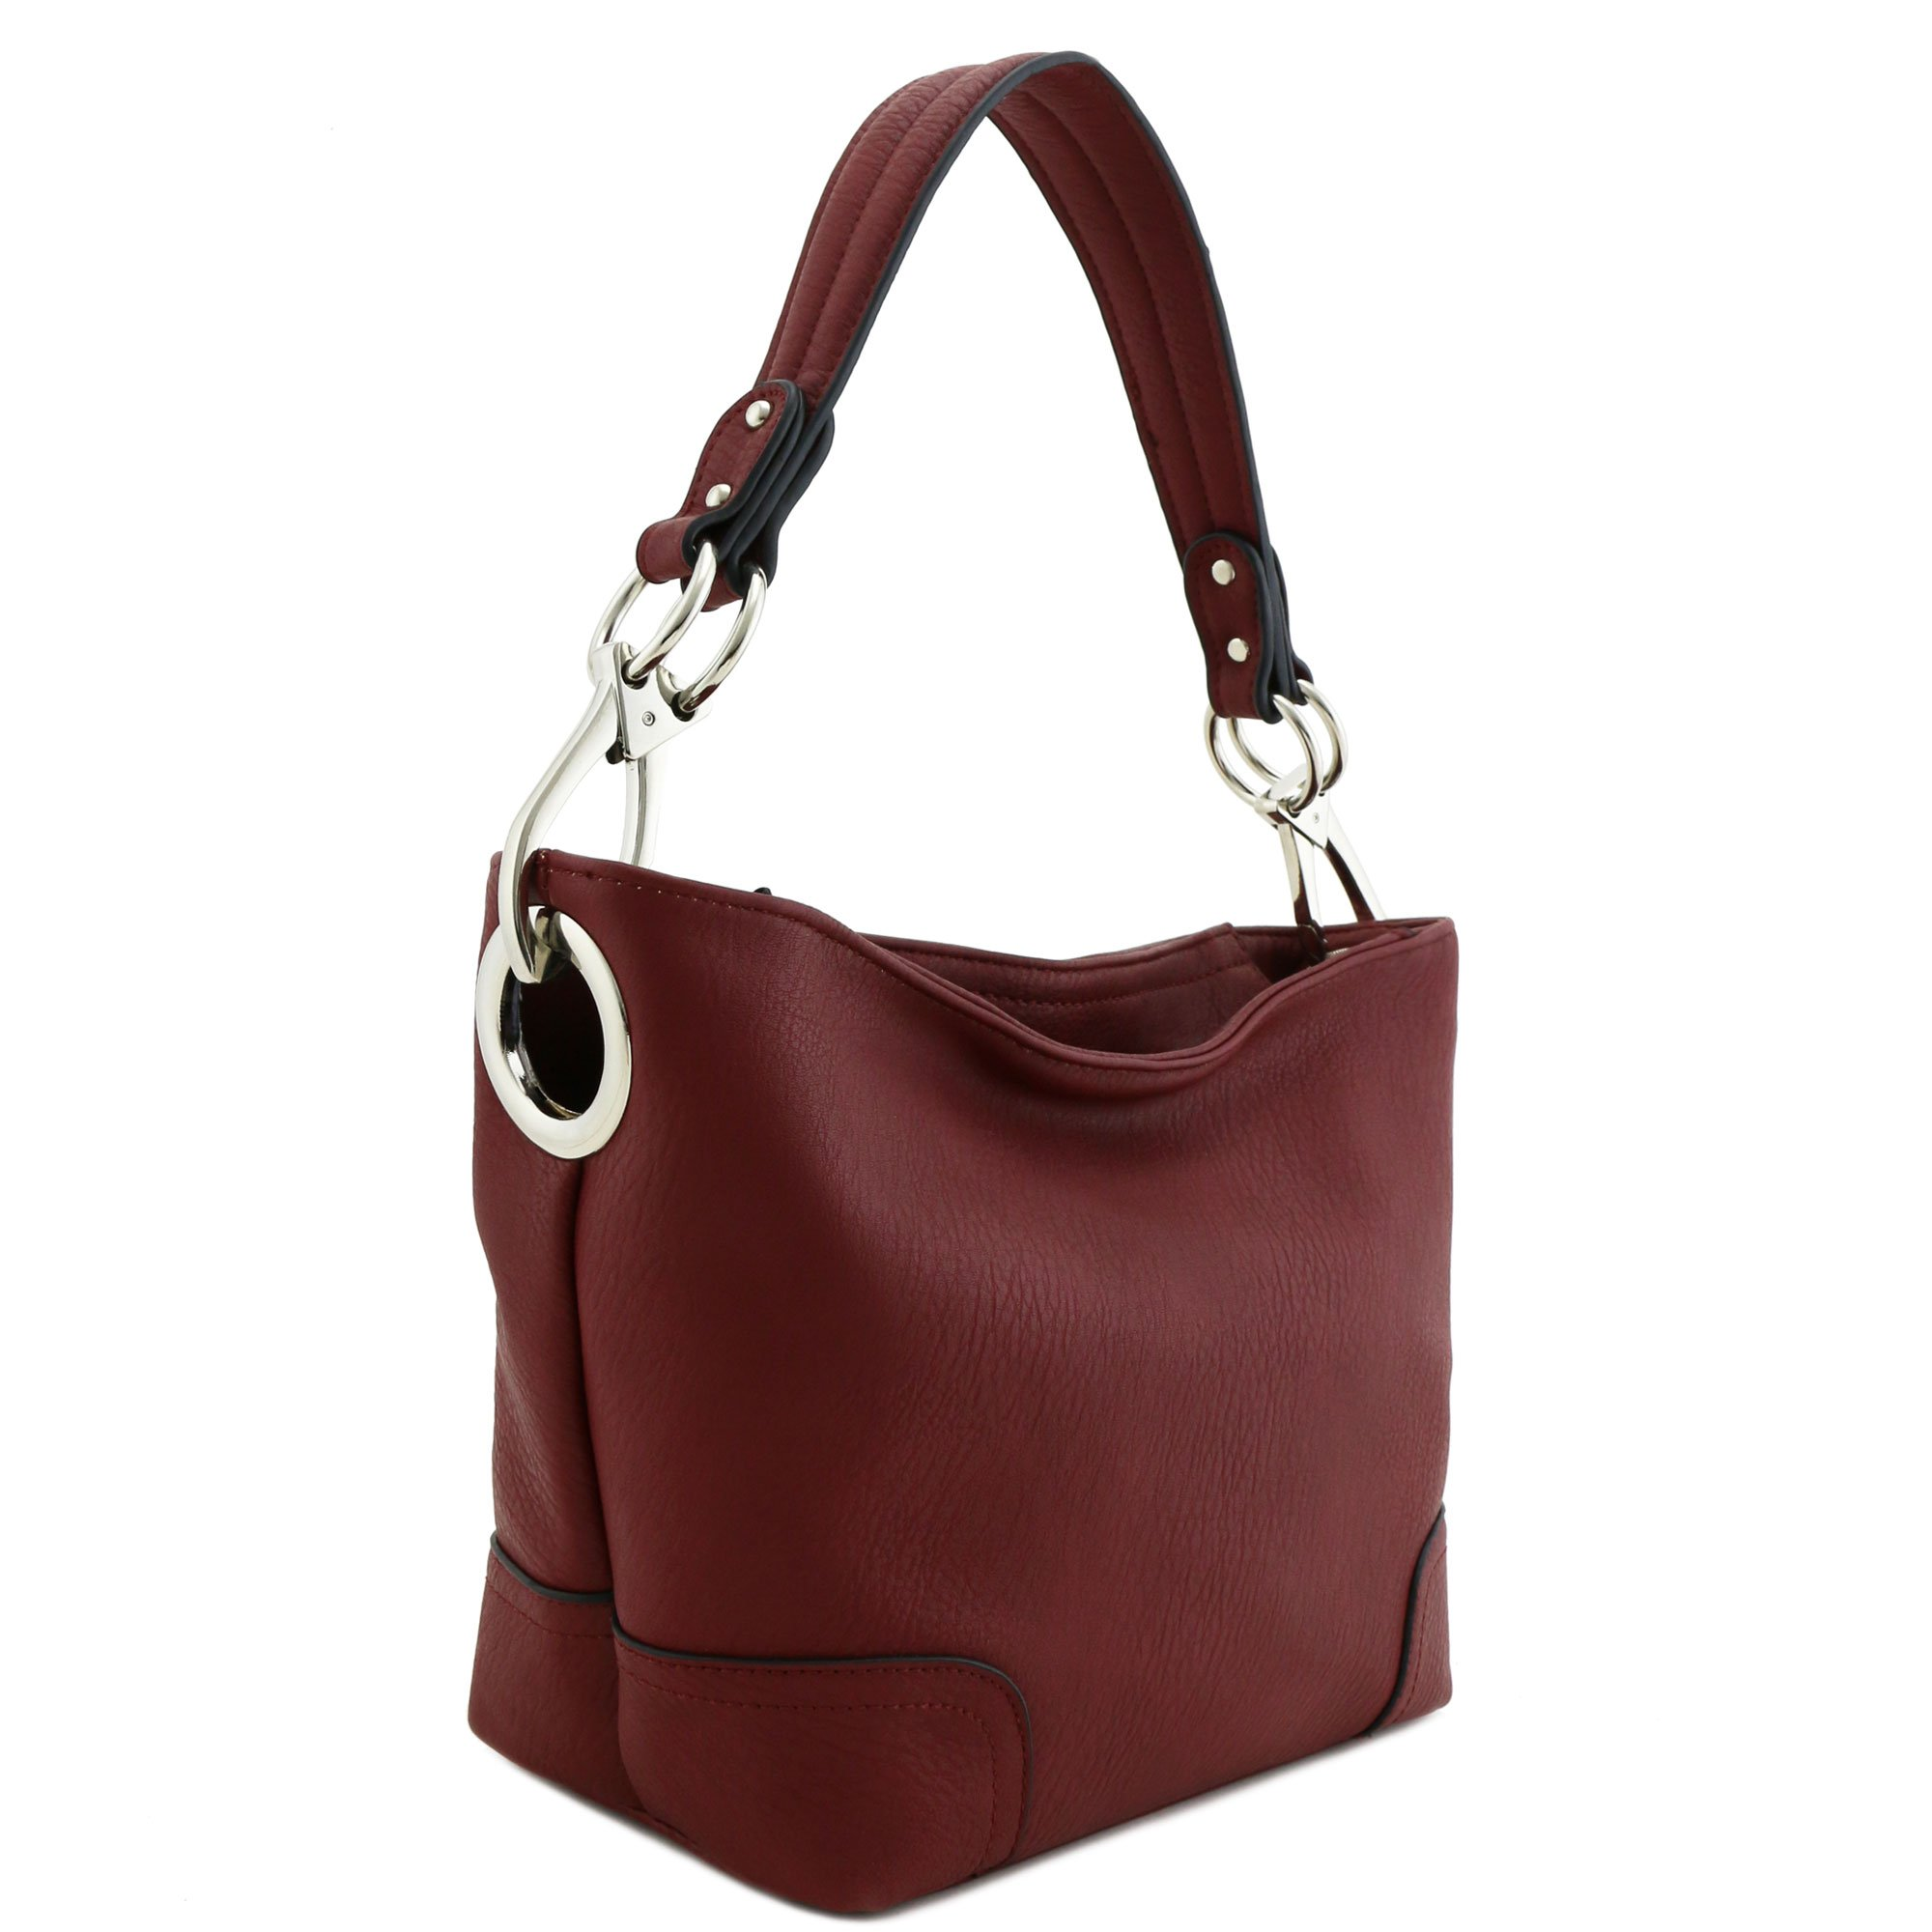 Hobo Shoulder Bag with Snap Hook Hardware Small (Burgundy)